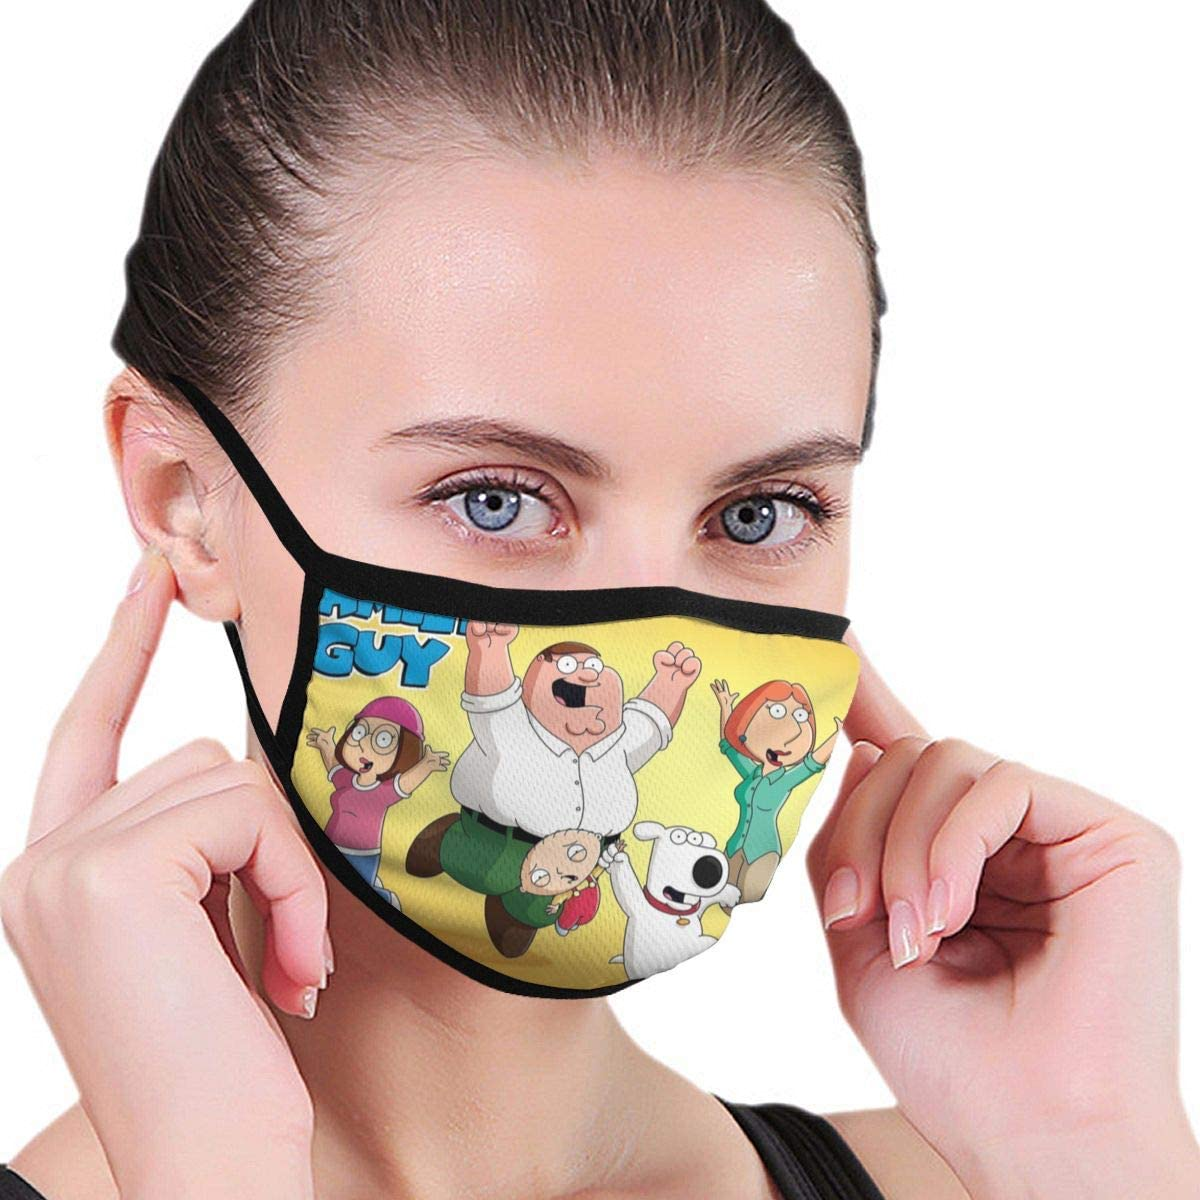 Qwtykeertyi Family Guy Unisex Washable and Reusable Cotton Warm Face Protection for Outdoor 6.8inch x 4.7inch